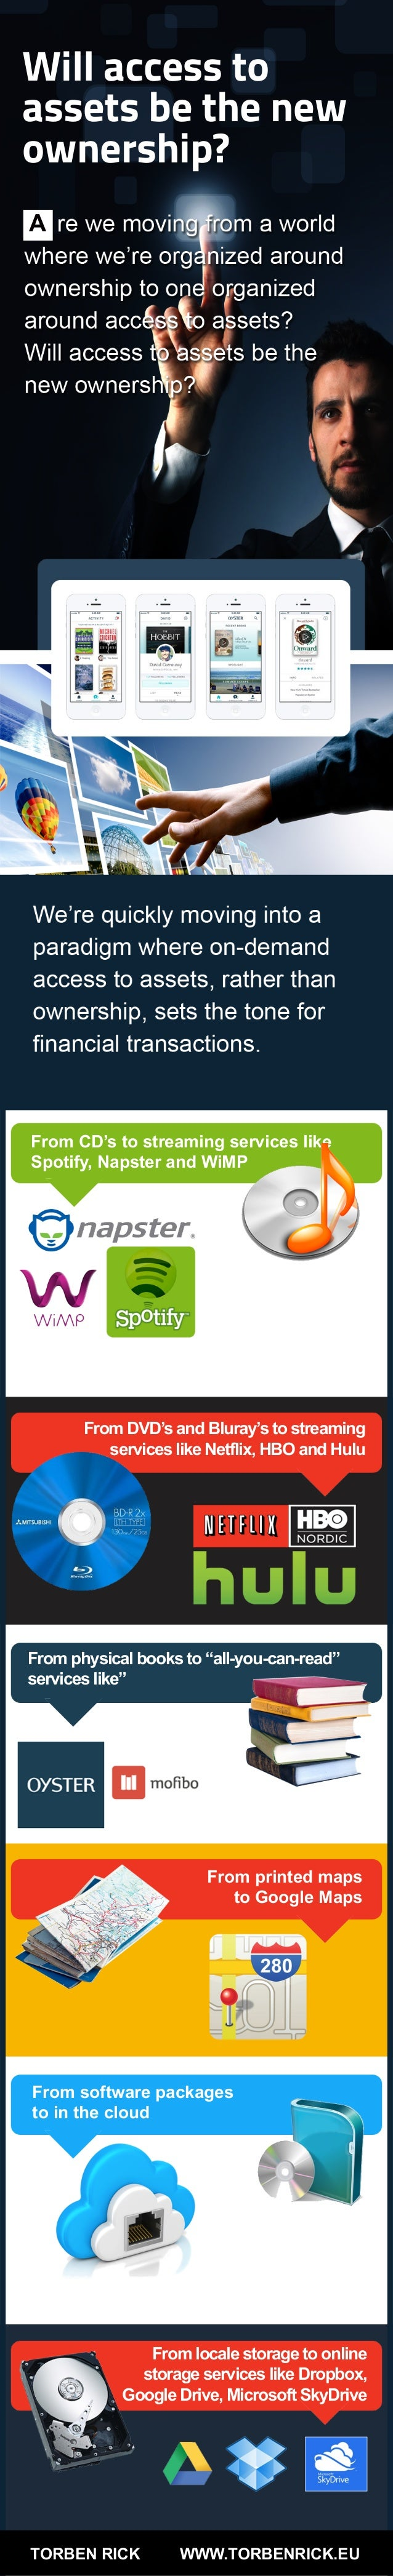 Will access to assets be the new ownership? A  From CD's to streaming services like Spotify, Napster and WiMP  From DVD's ...